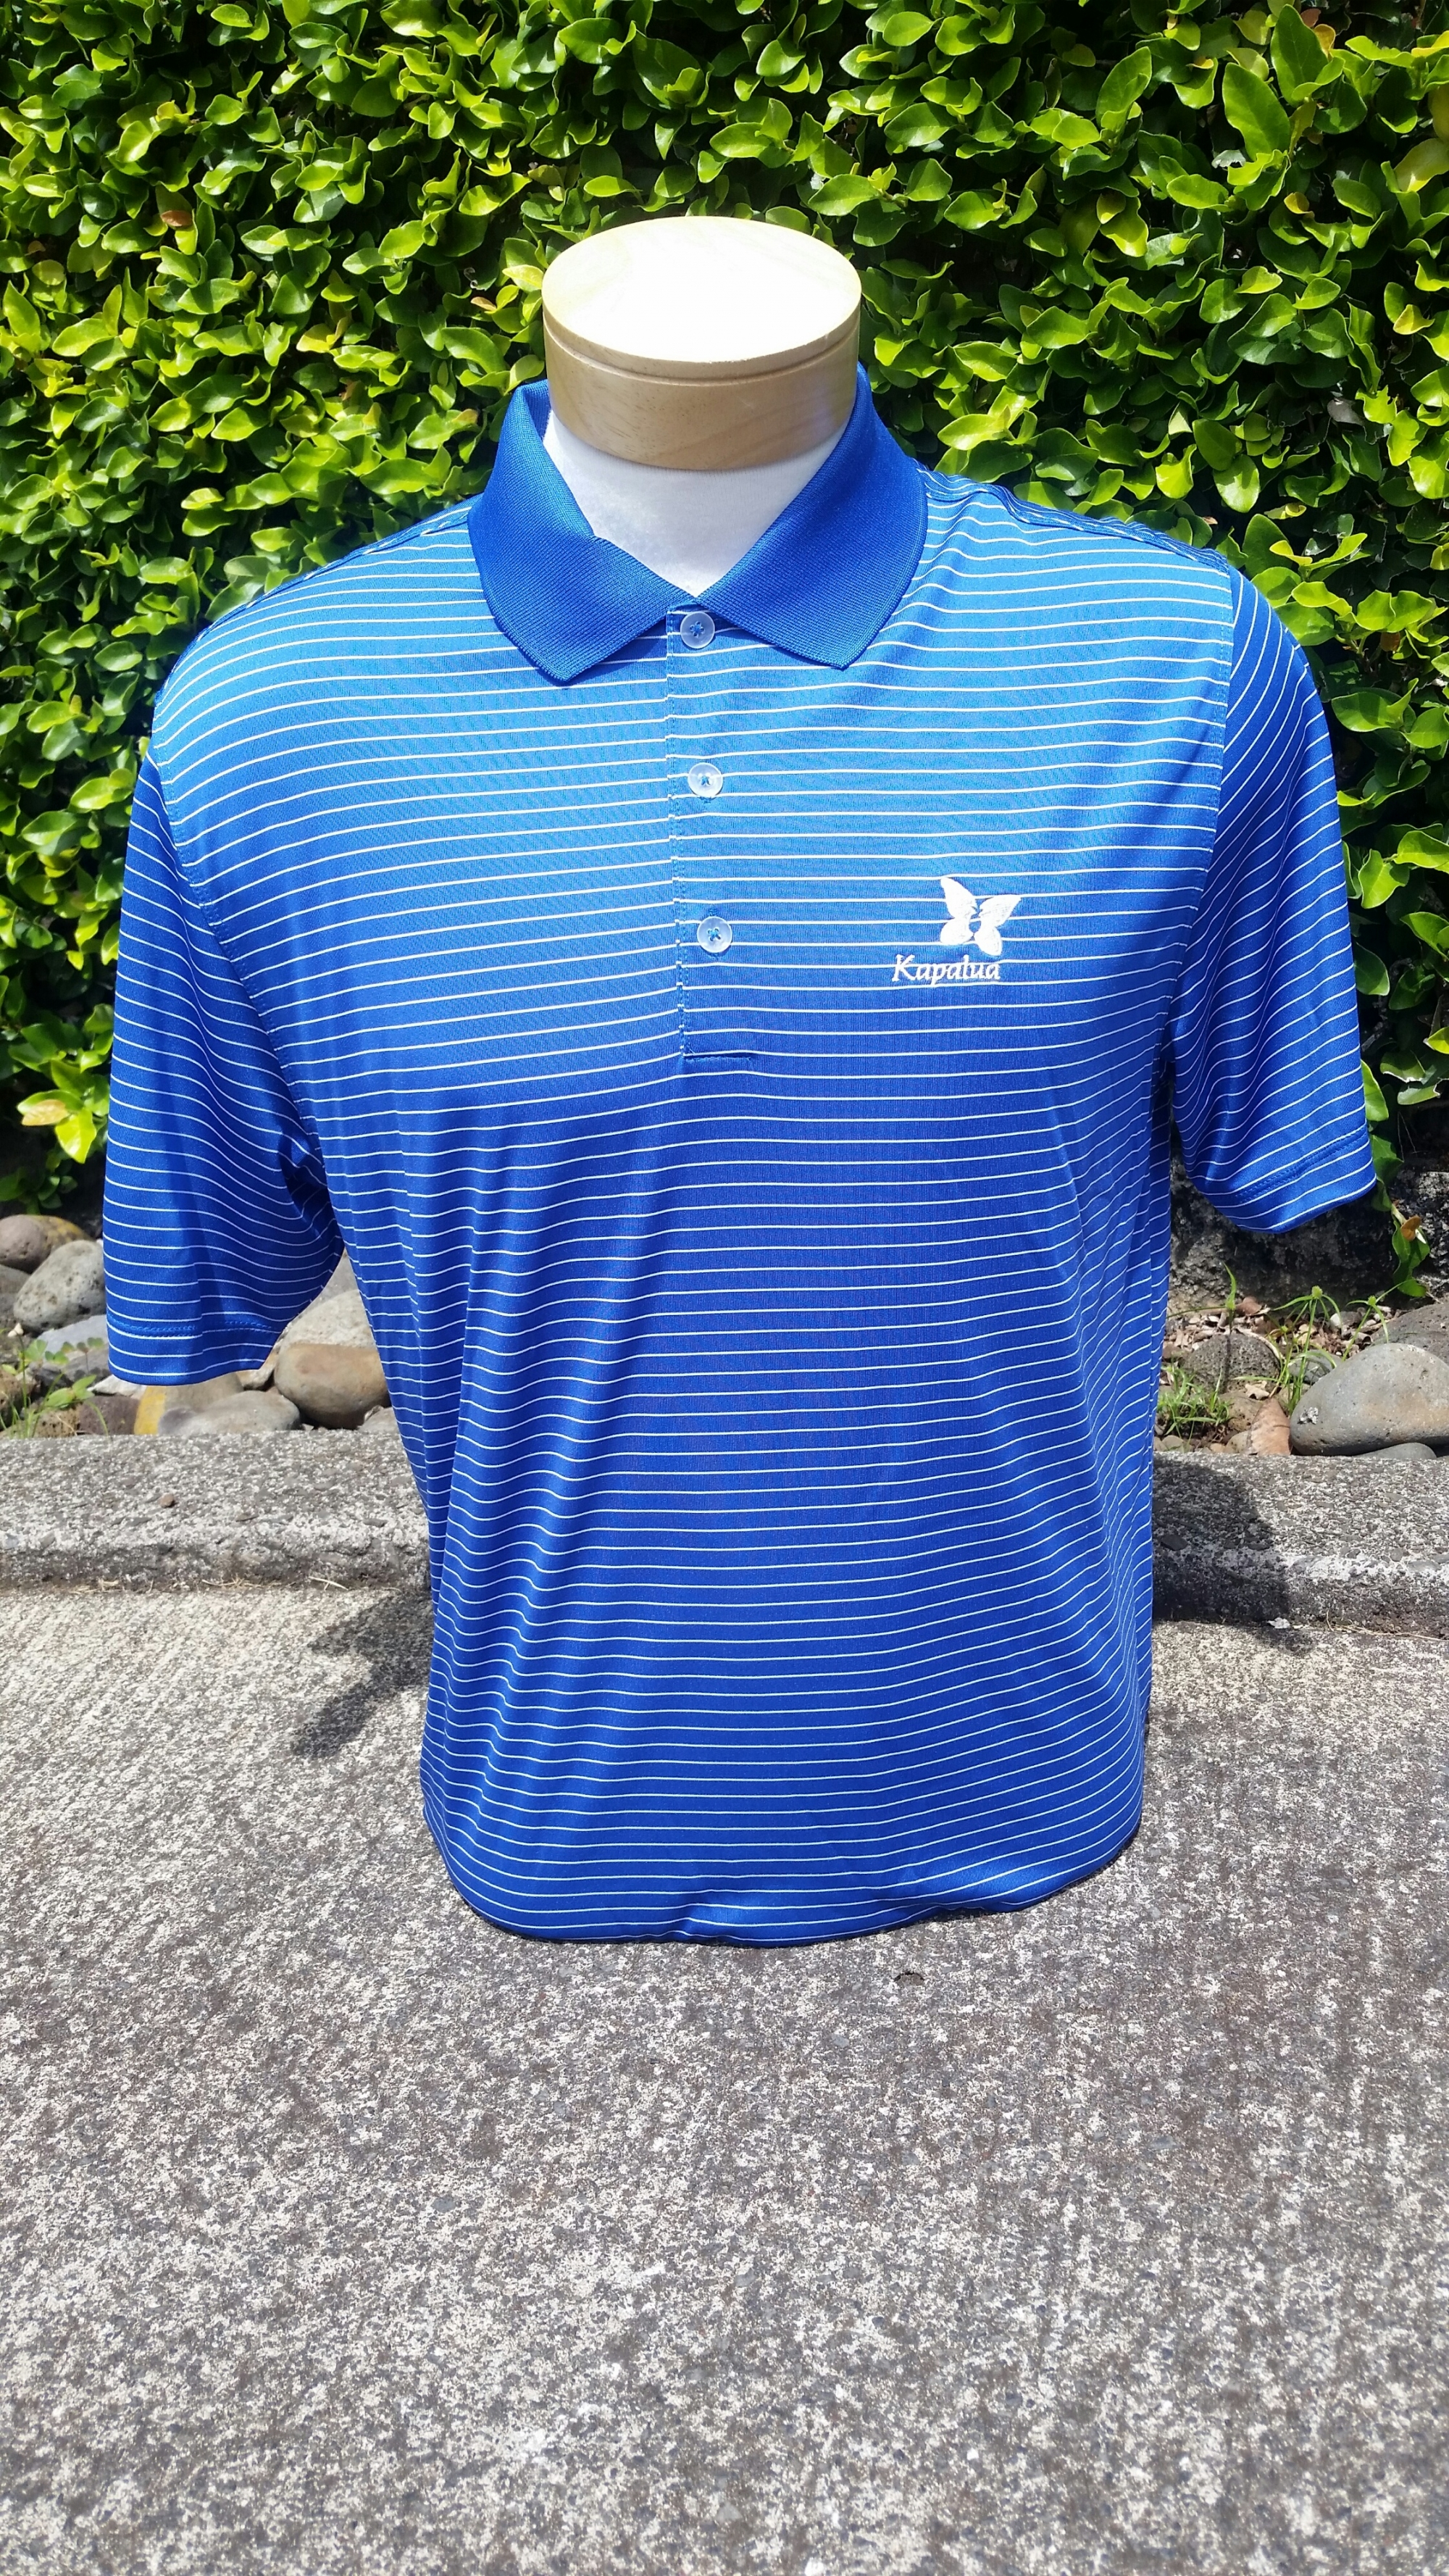 Nike Men's Blue and White Pinstriped Polo